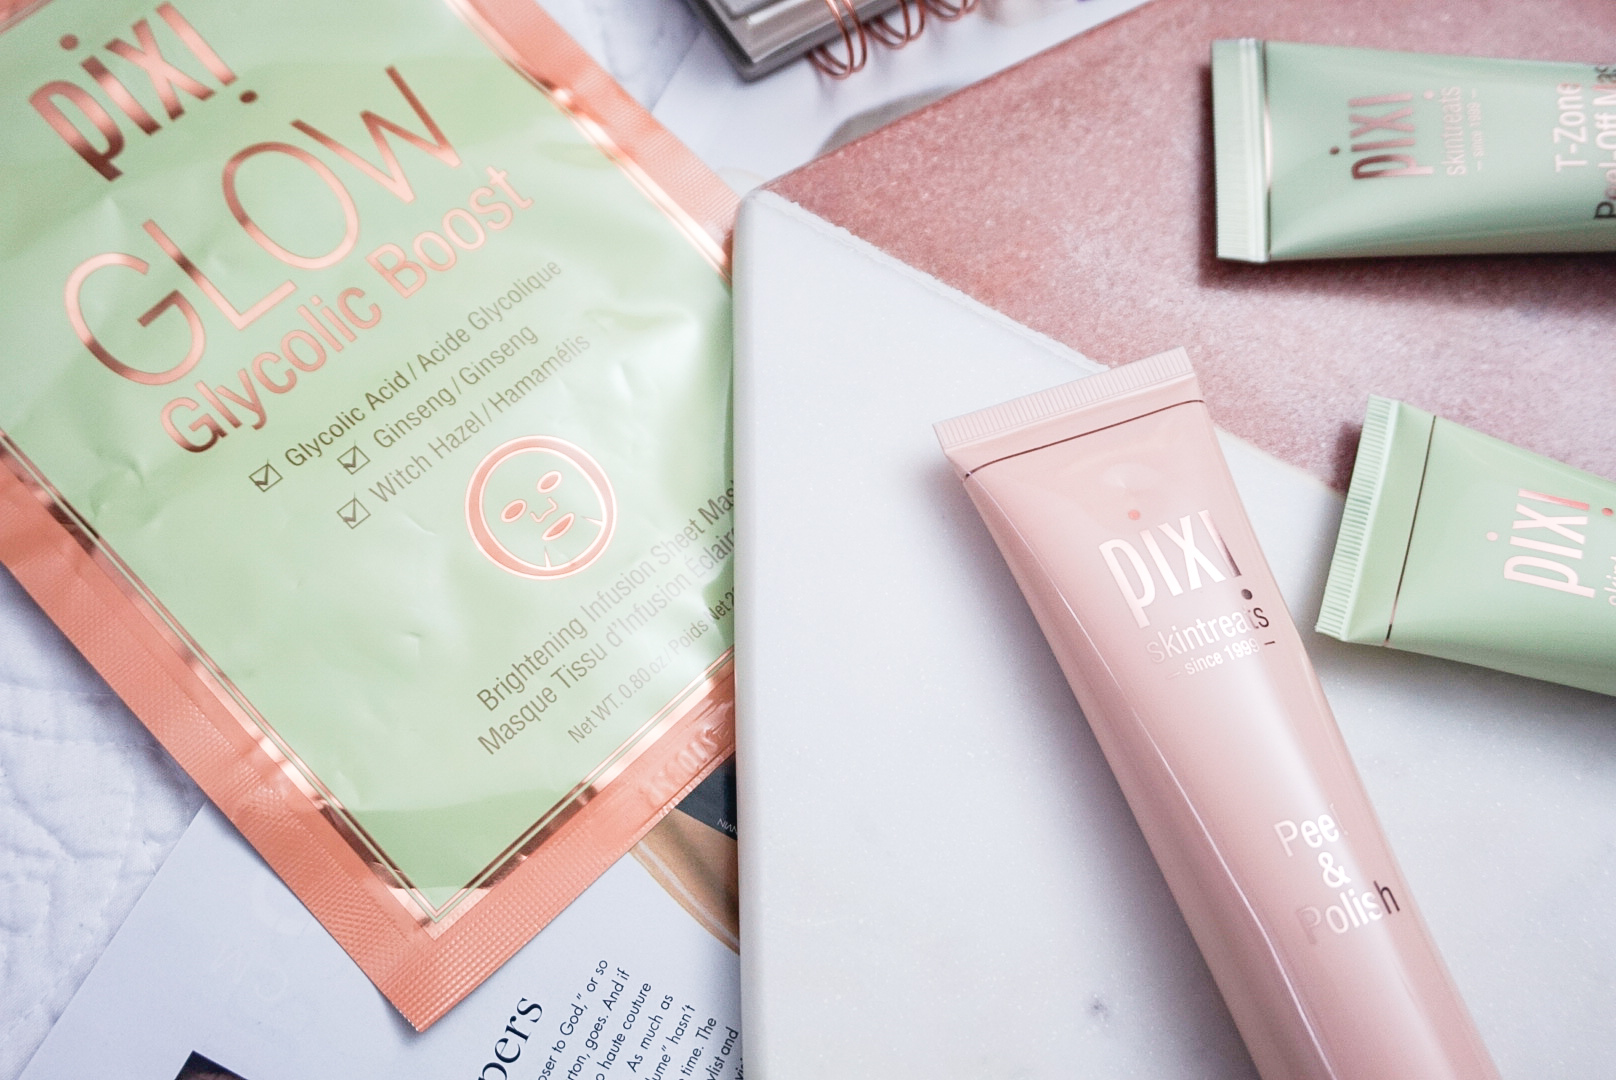 Pixi Beauty Face Masks